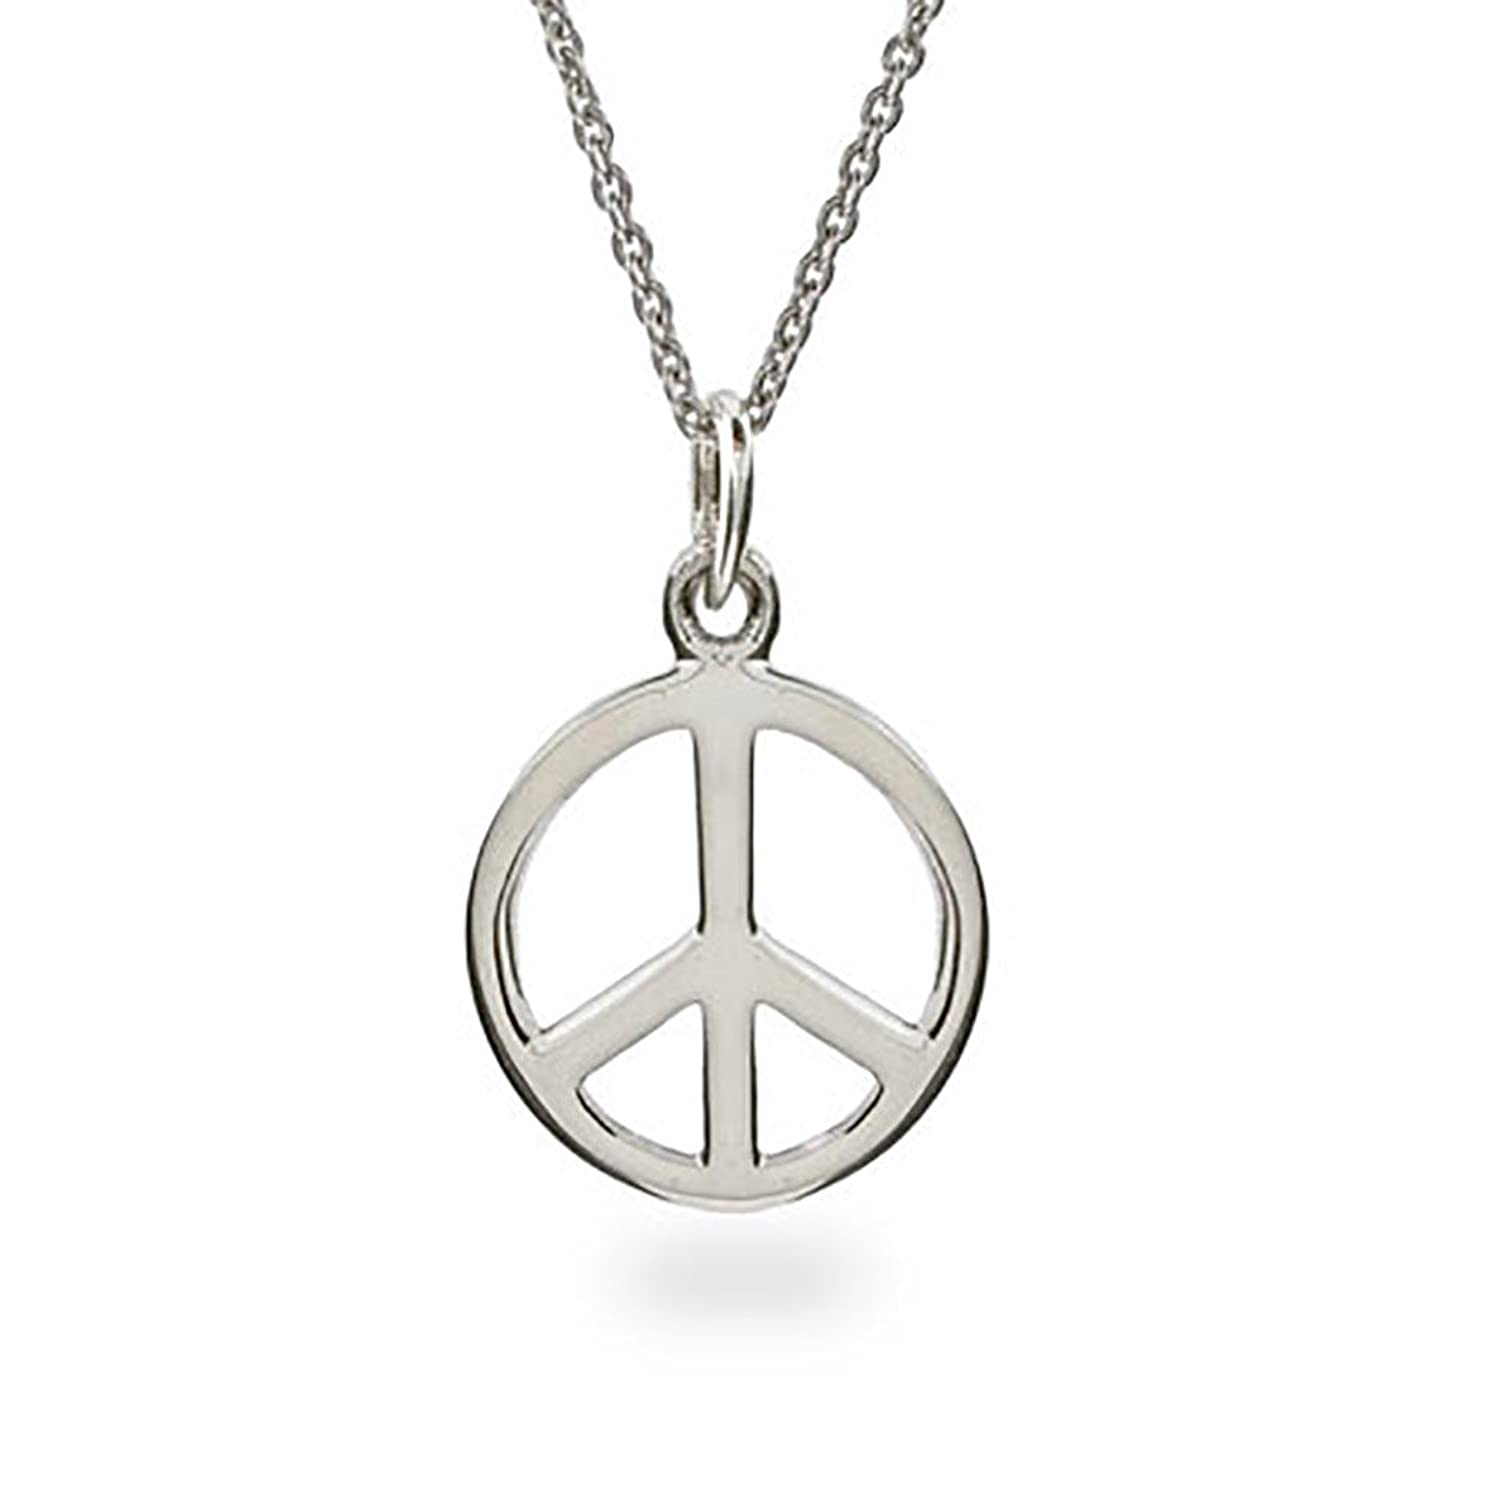 Amazon sterling silver peace sign necklace 16 18 20 jewelry buycottarizona Gallery